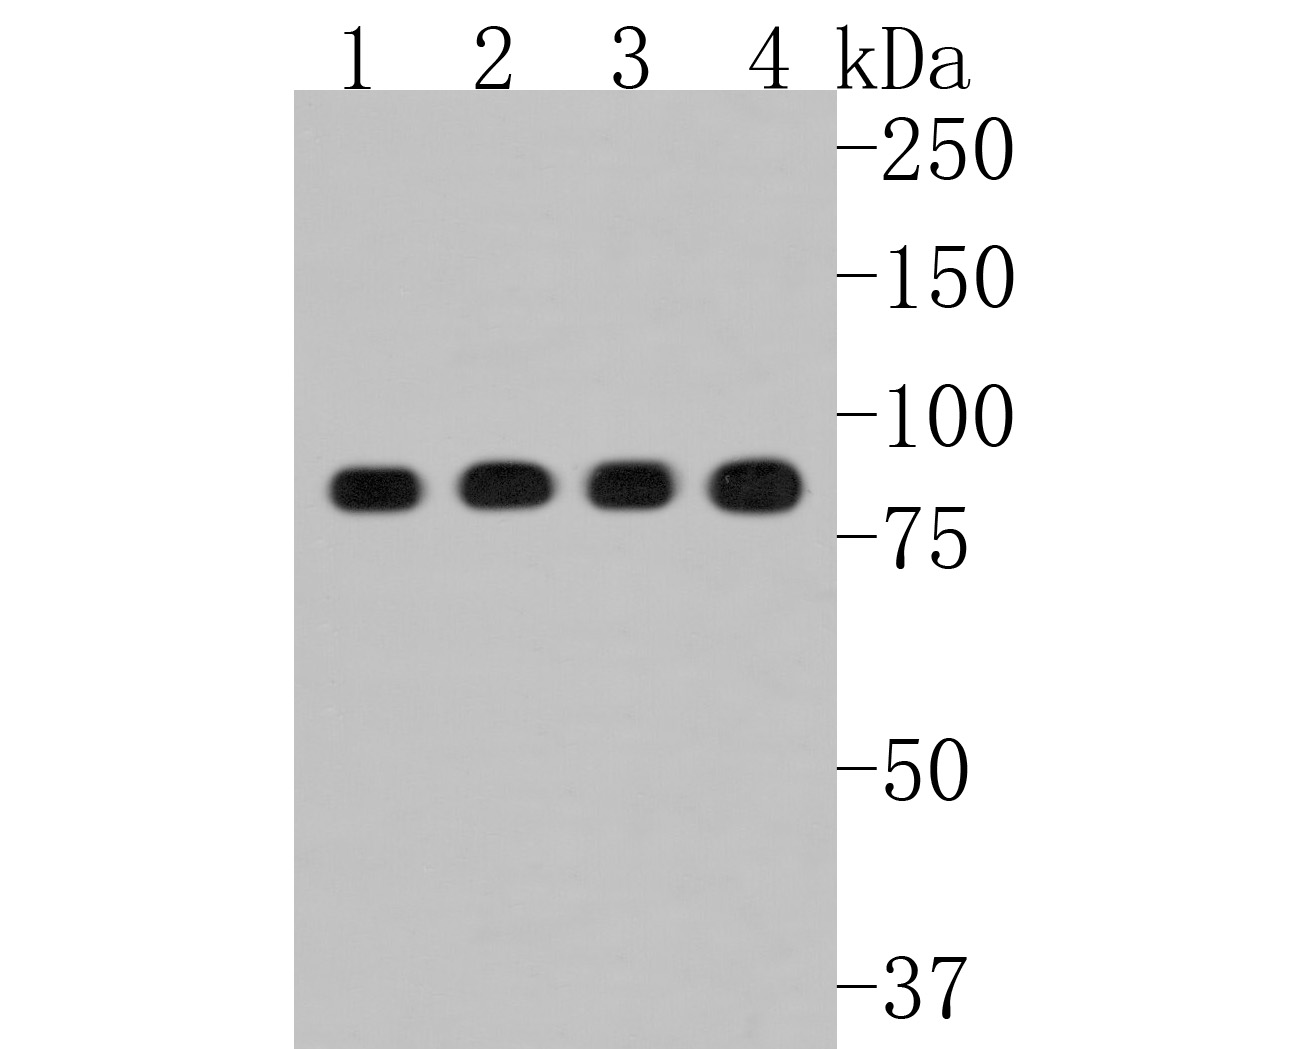 Western blot analysis of Hsp90 beta on different lysates. Proteins were transferred to a PVDF membrane and blocked with 5% BSA in PBS for 1 hour at room temperature. The primary antibody (ET1605-56, 1/500) was used in 5% BSA at room temperature for 2 hours. Goat Anti-Rabbit IgG - HRP Secondary Antibody (HA1001) at 1:5,000 dilution was used for 1 hour at room temperature.<br />  Positive control: <br />  Lane 1: Hela cell lysate<br />  Lane 2: K562 cell lysate<br />  Lane 3: Jurkat cell lysate<br />  Lane 4: 293 cell lysate